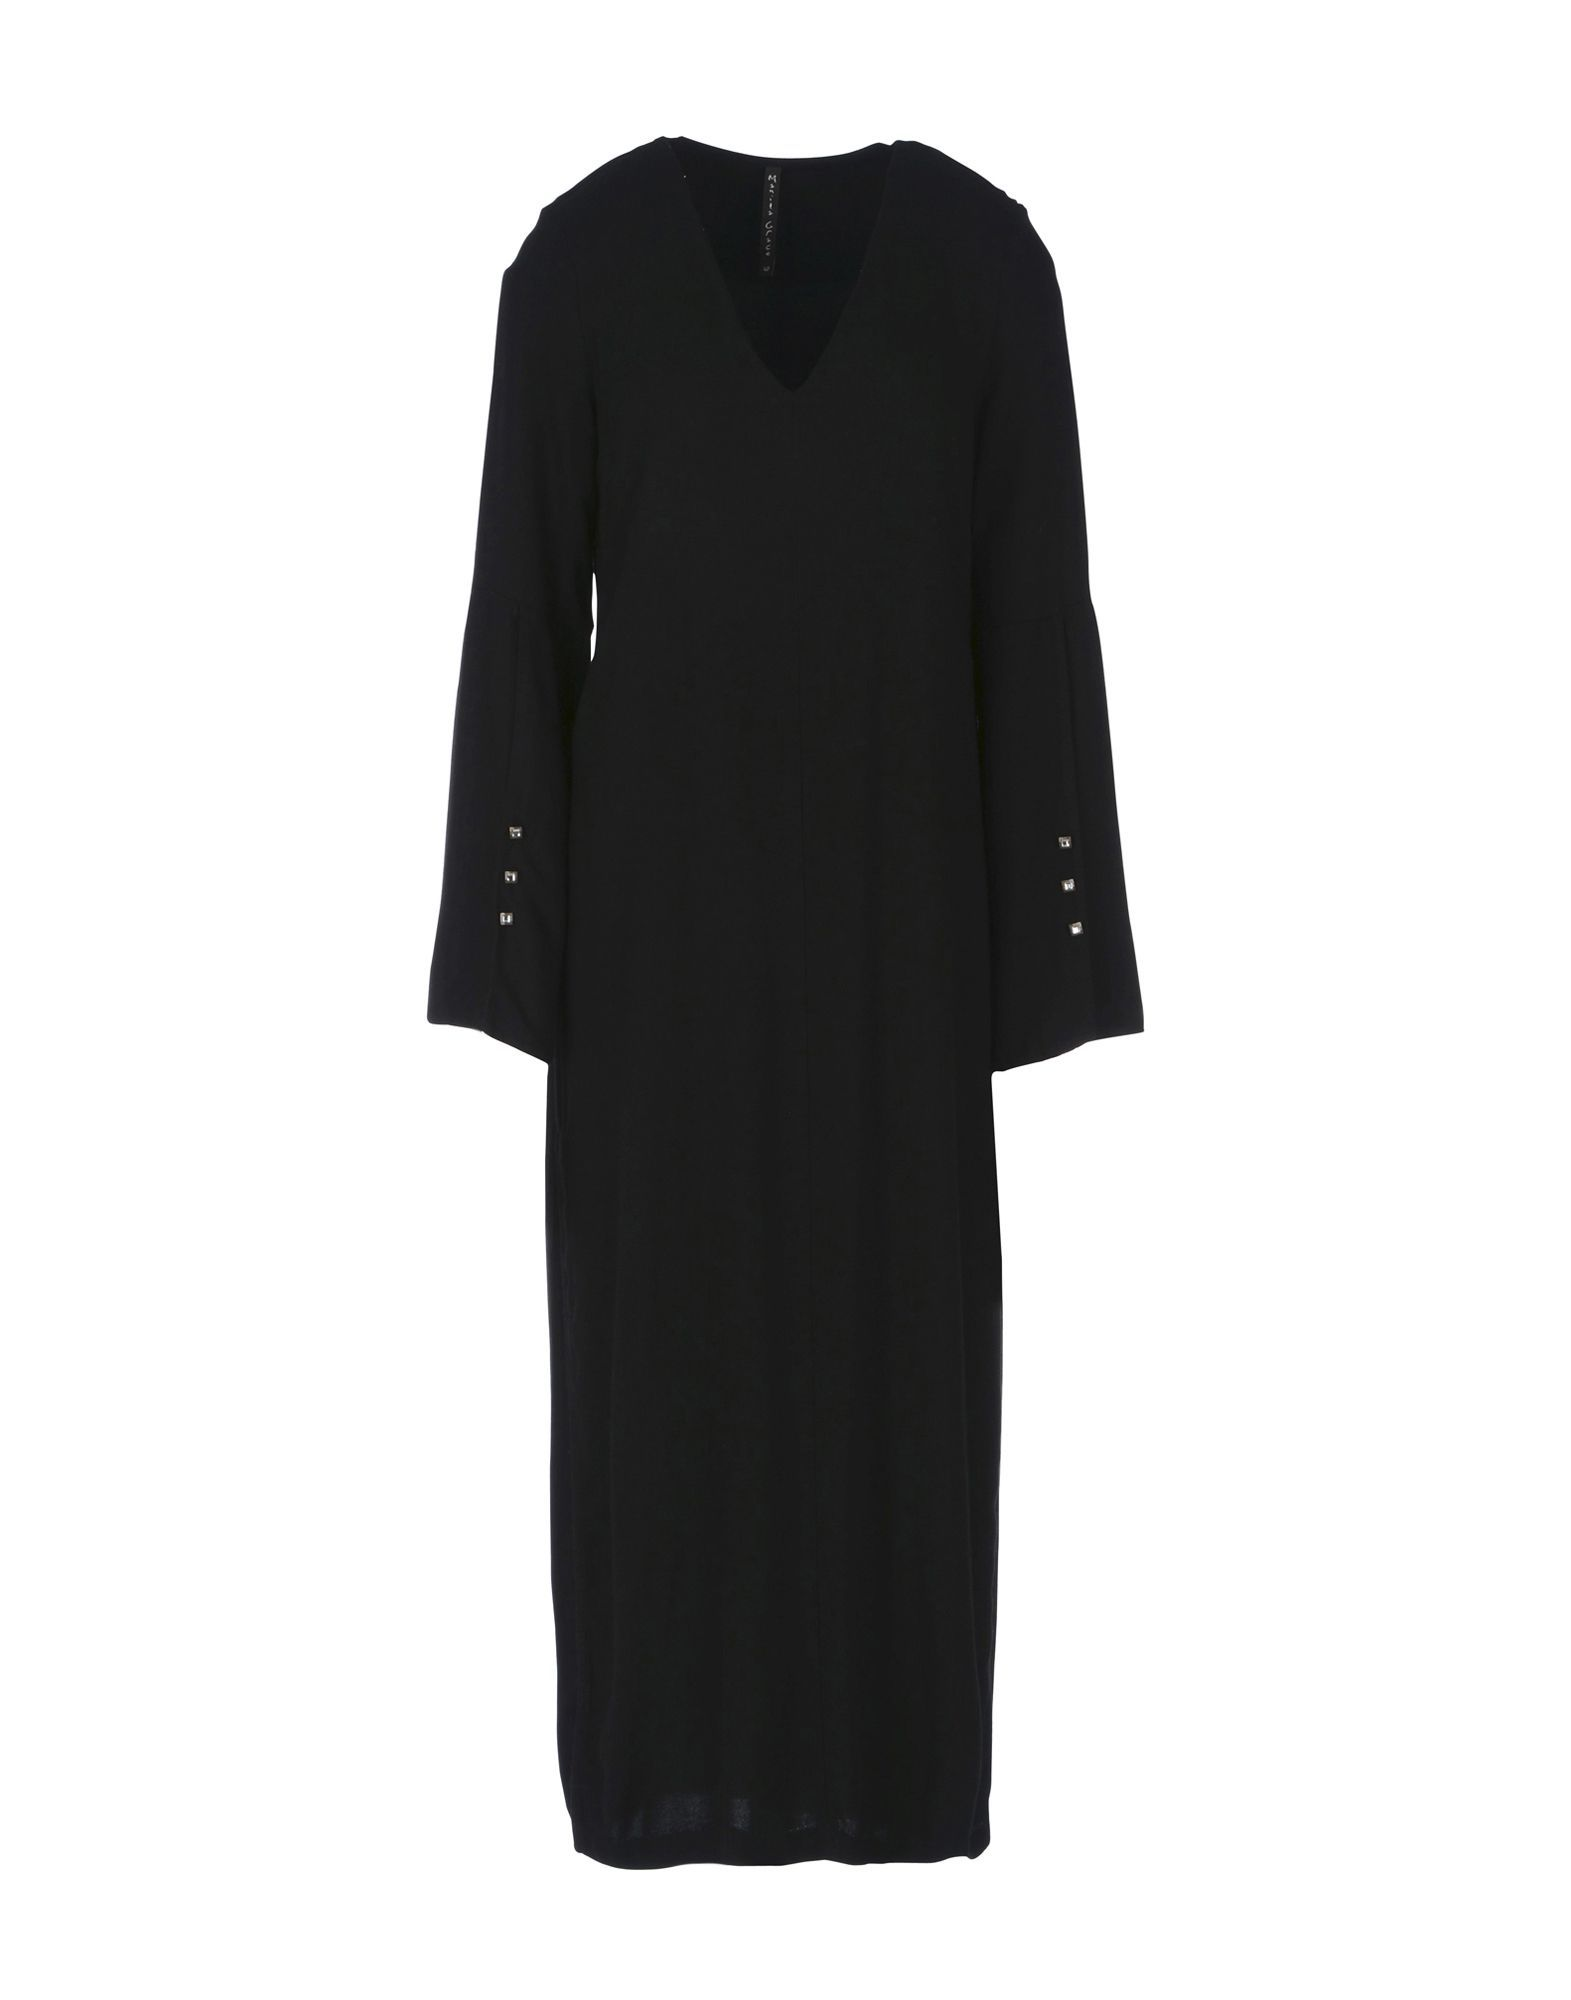 Manila Grace Black Long Sleeve Dress